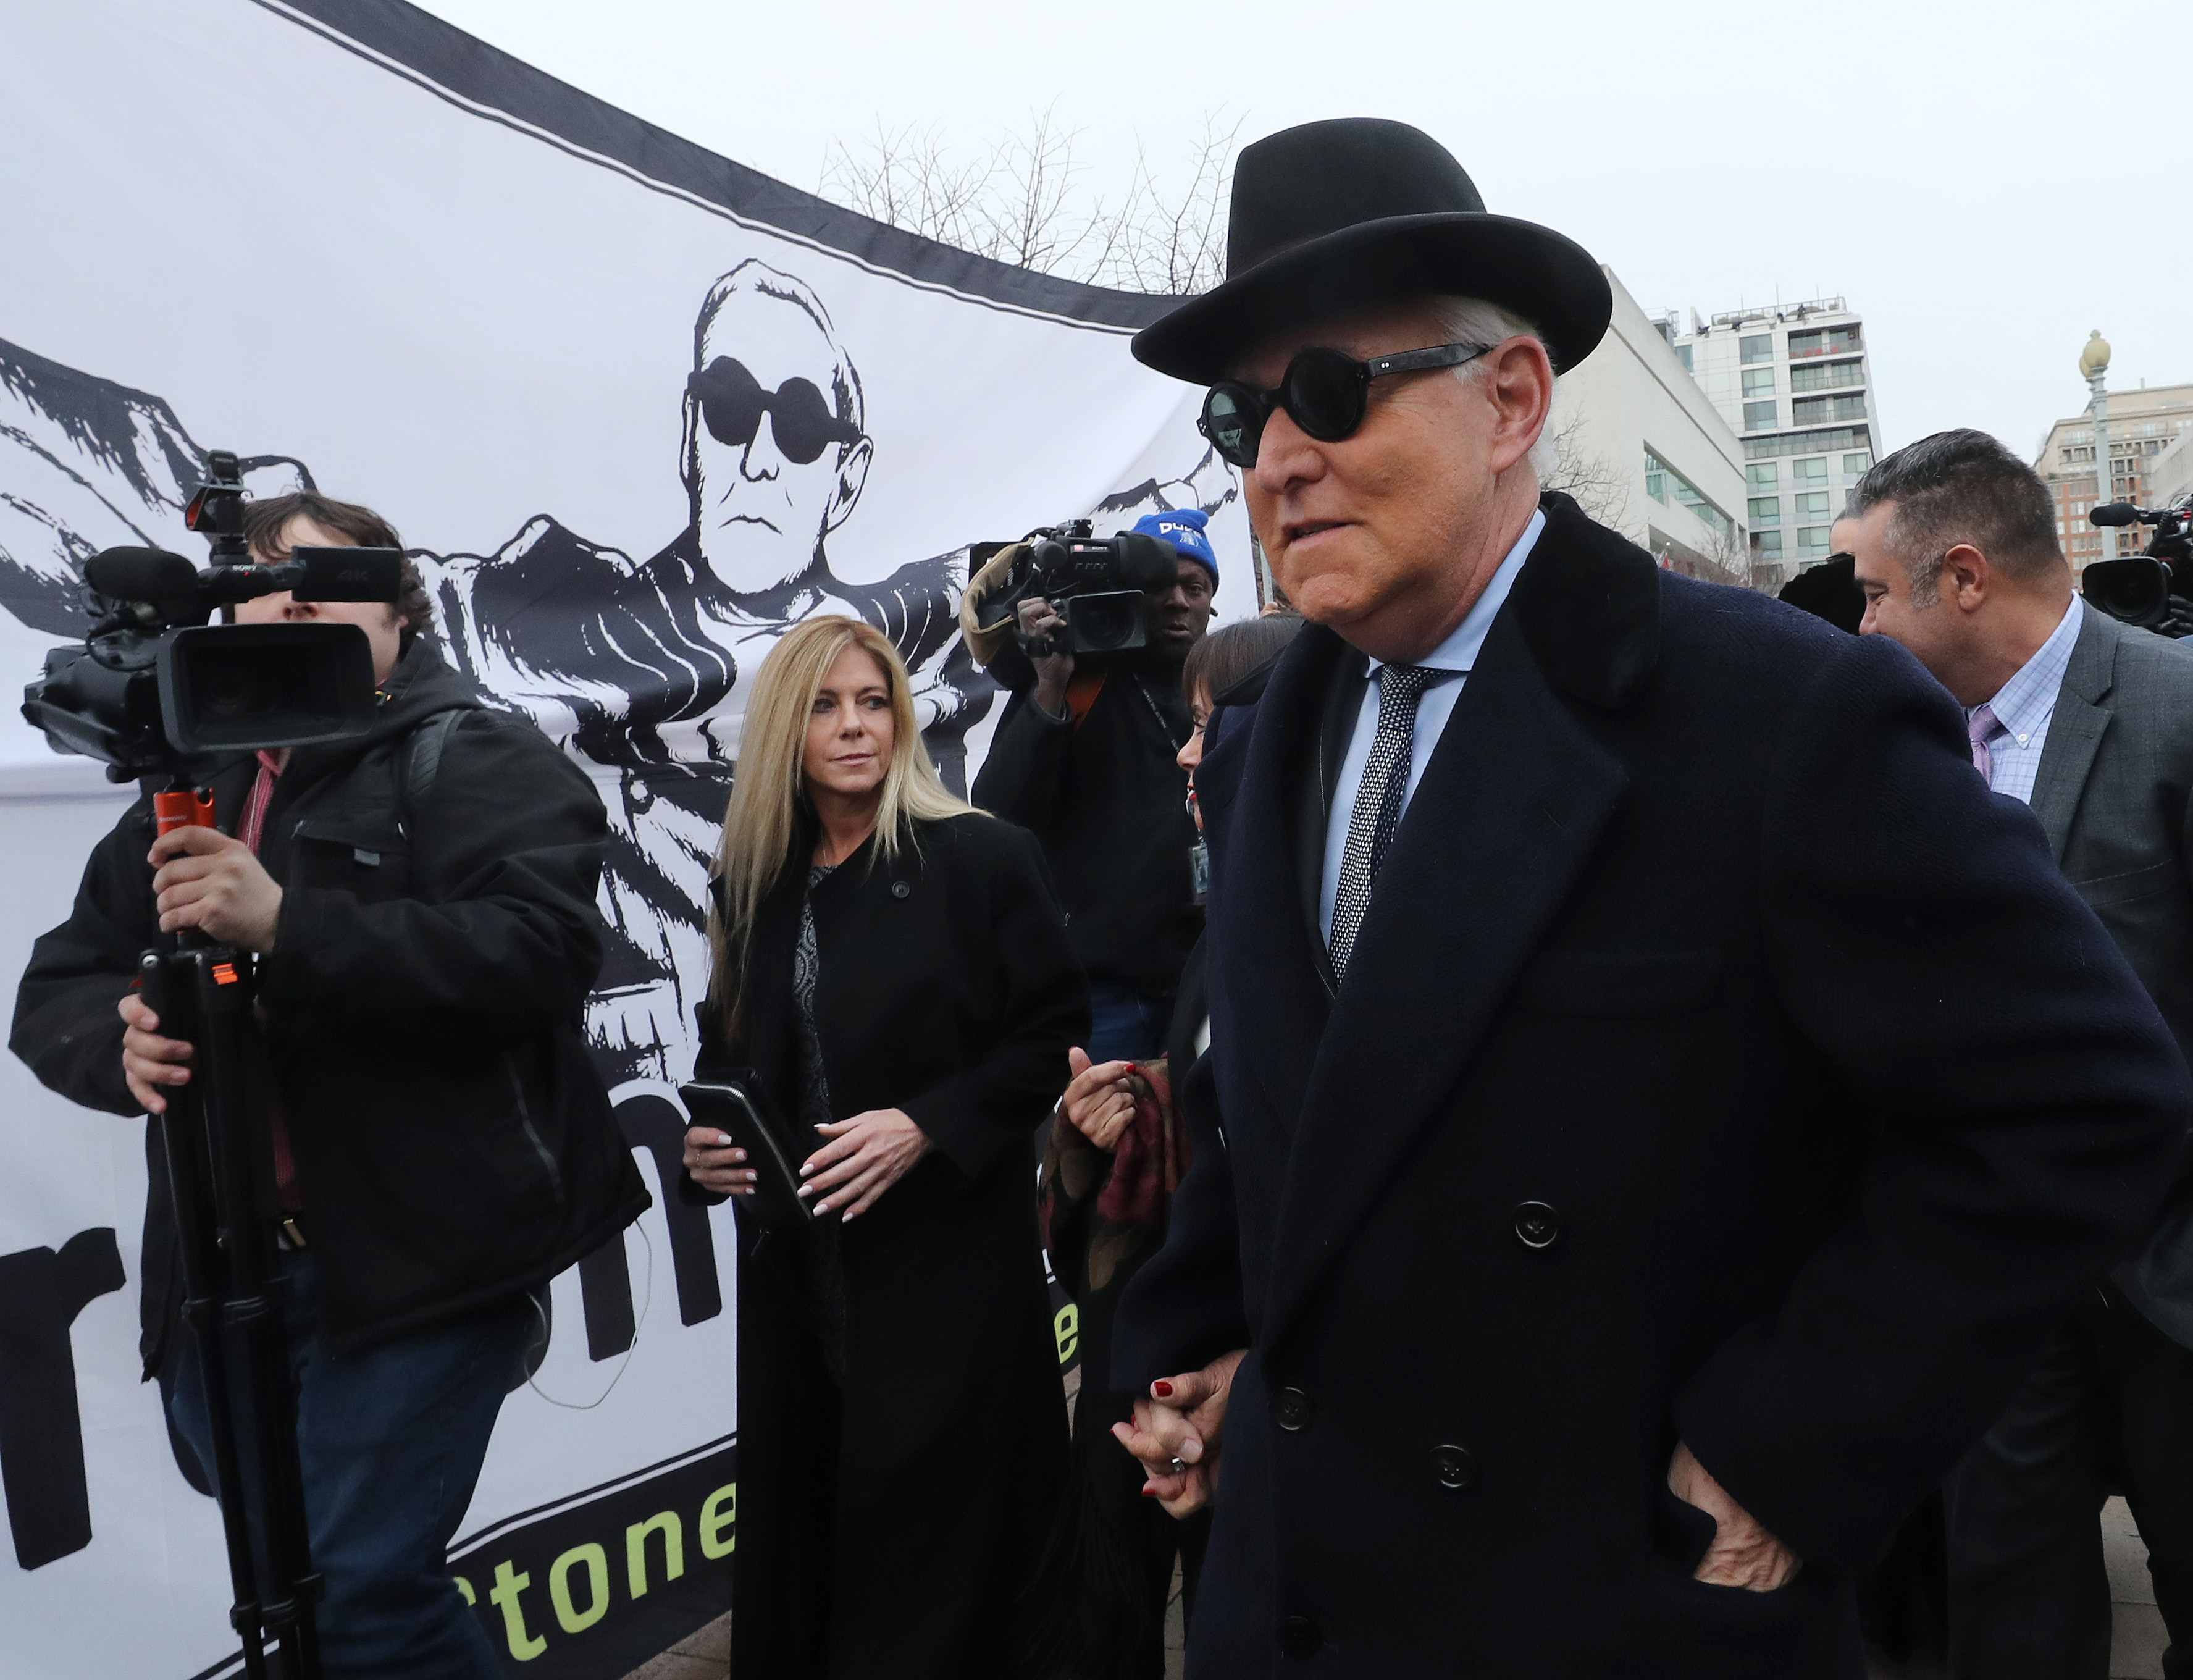 Roger Stone was just sentenced to 40 months in prison